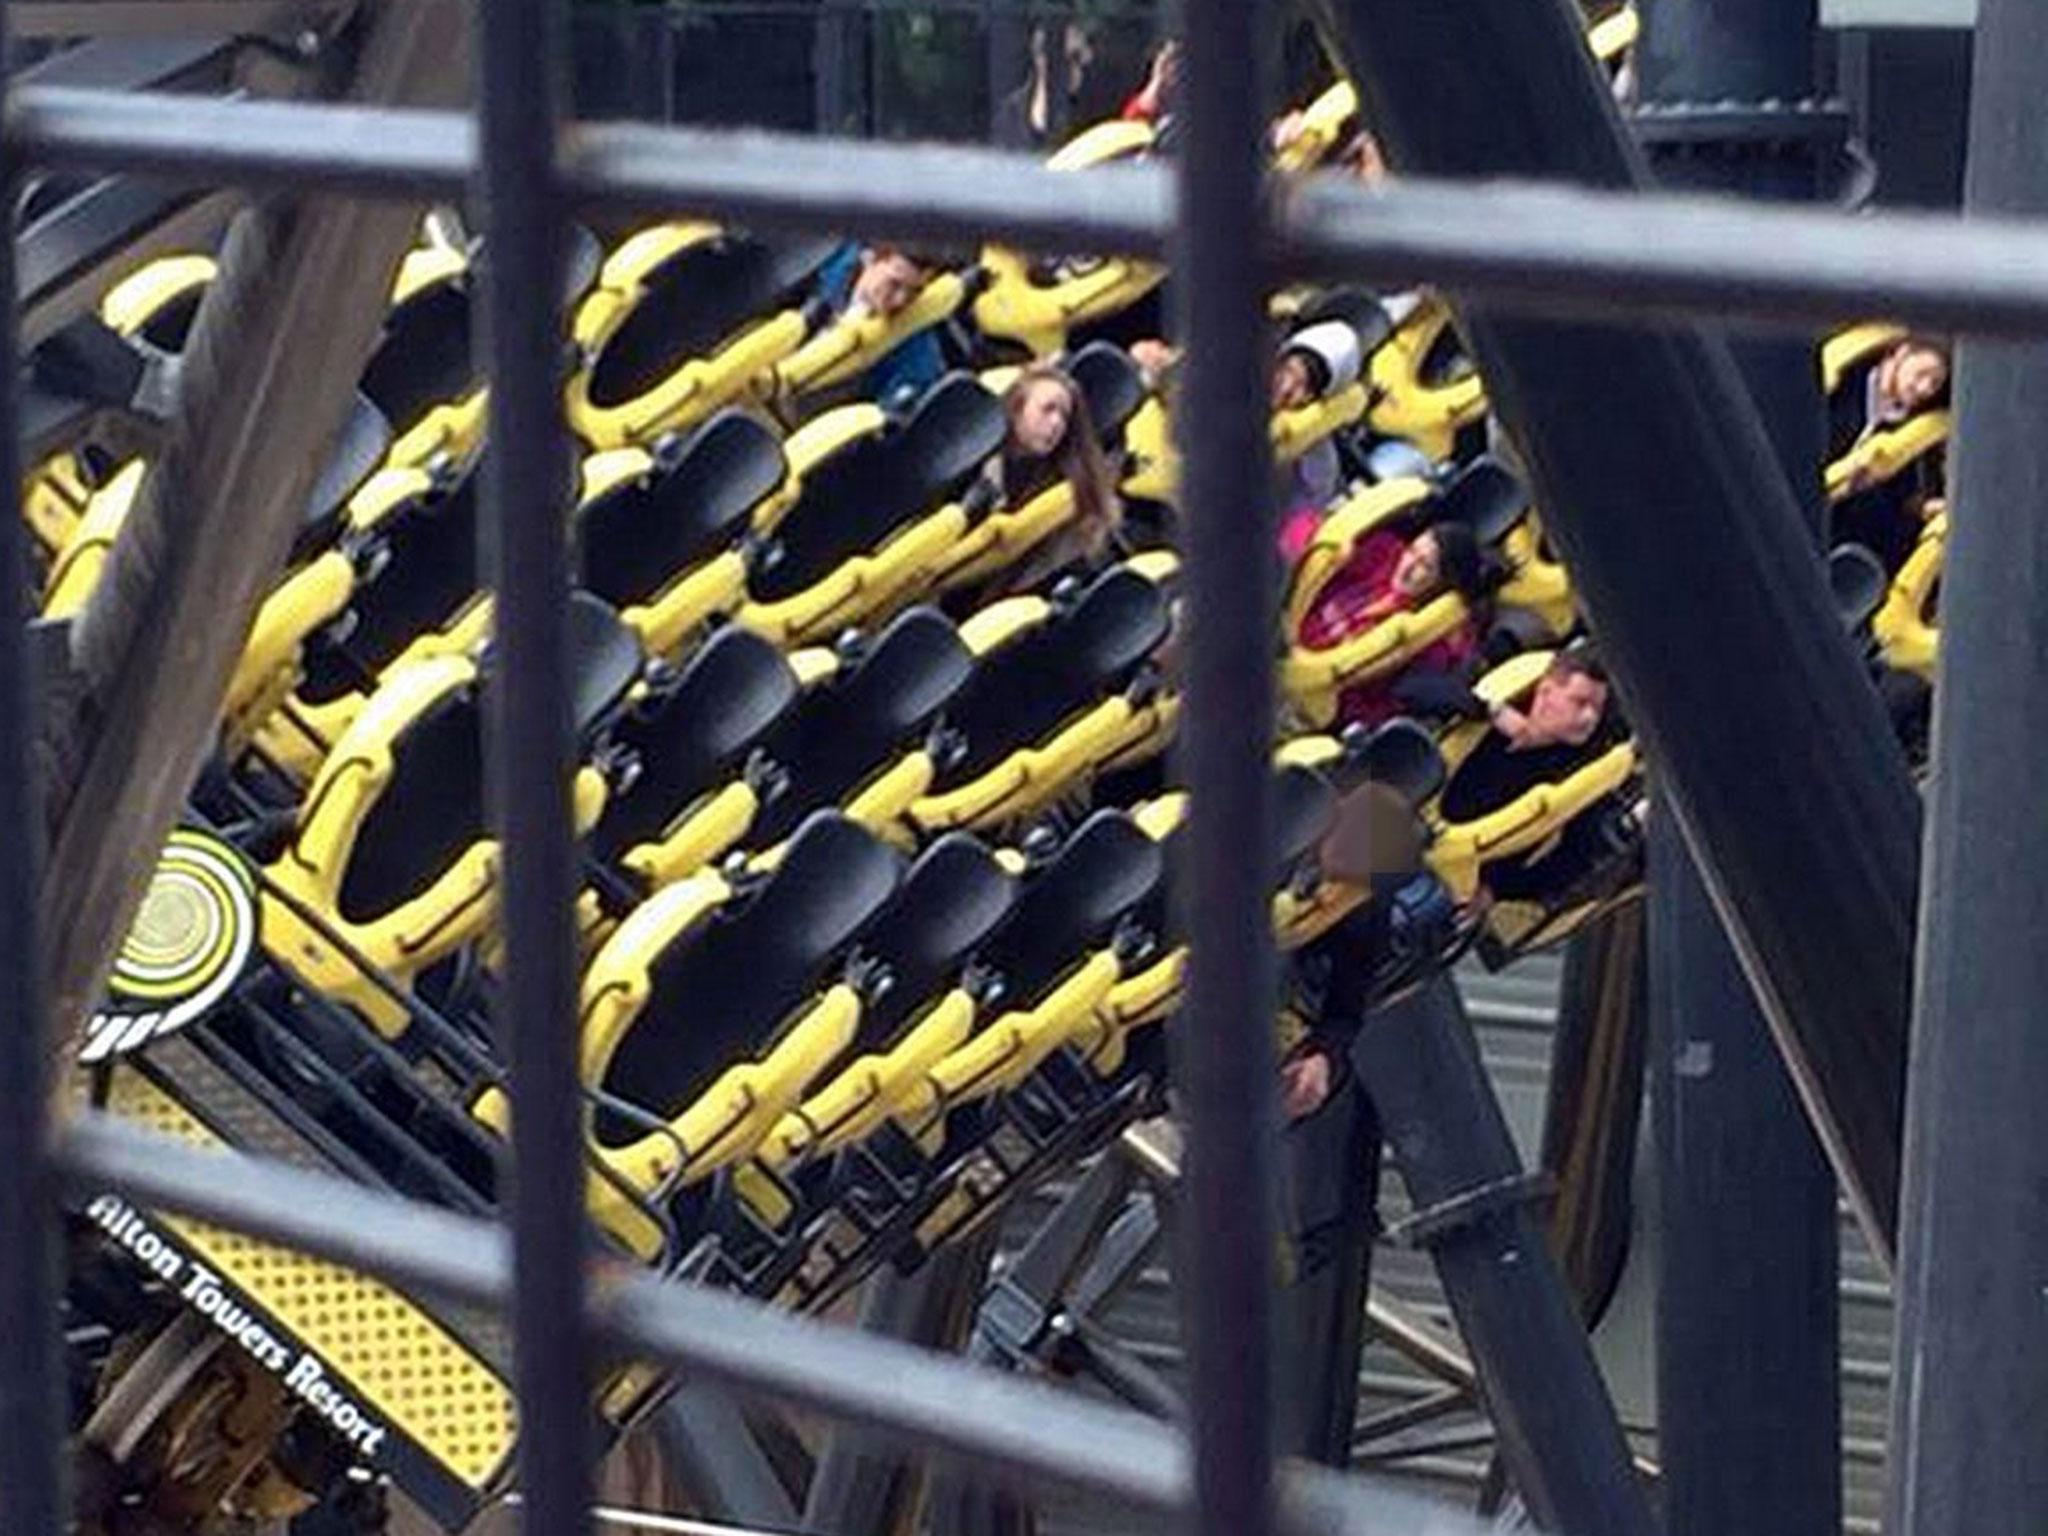 Http www alton towers co uk pages theme park - Alton Towers Smiler Sentencing Theme Park Fined 5m After Crash That Left Five Seriously Injured The Independent